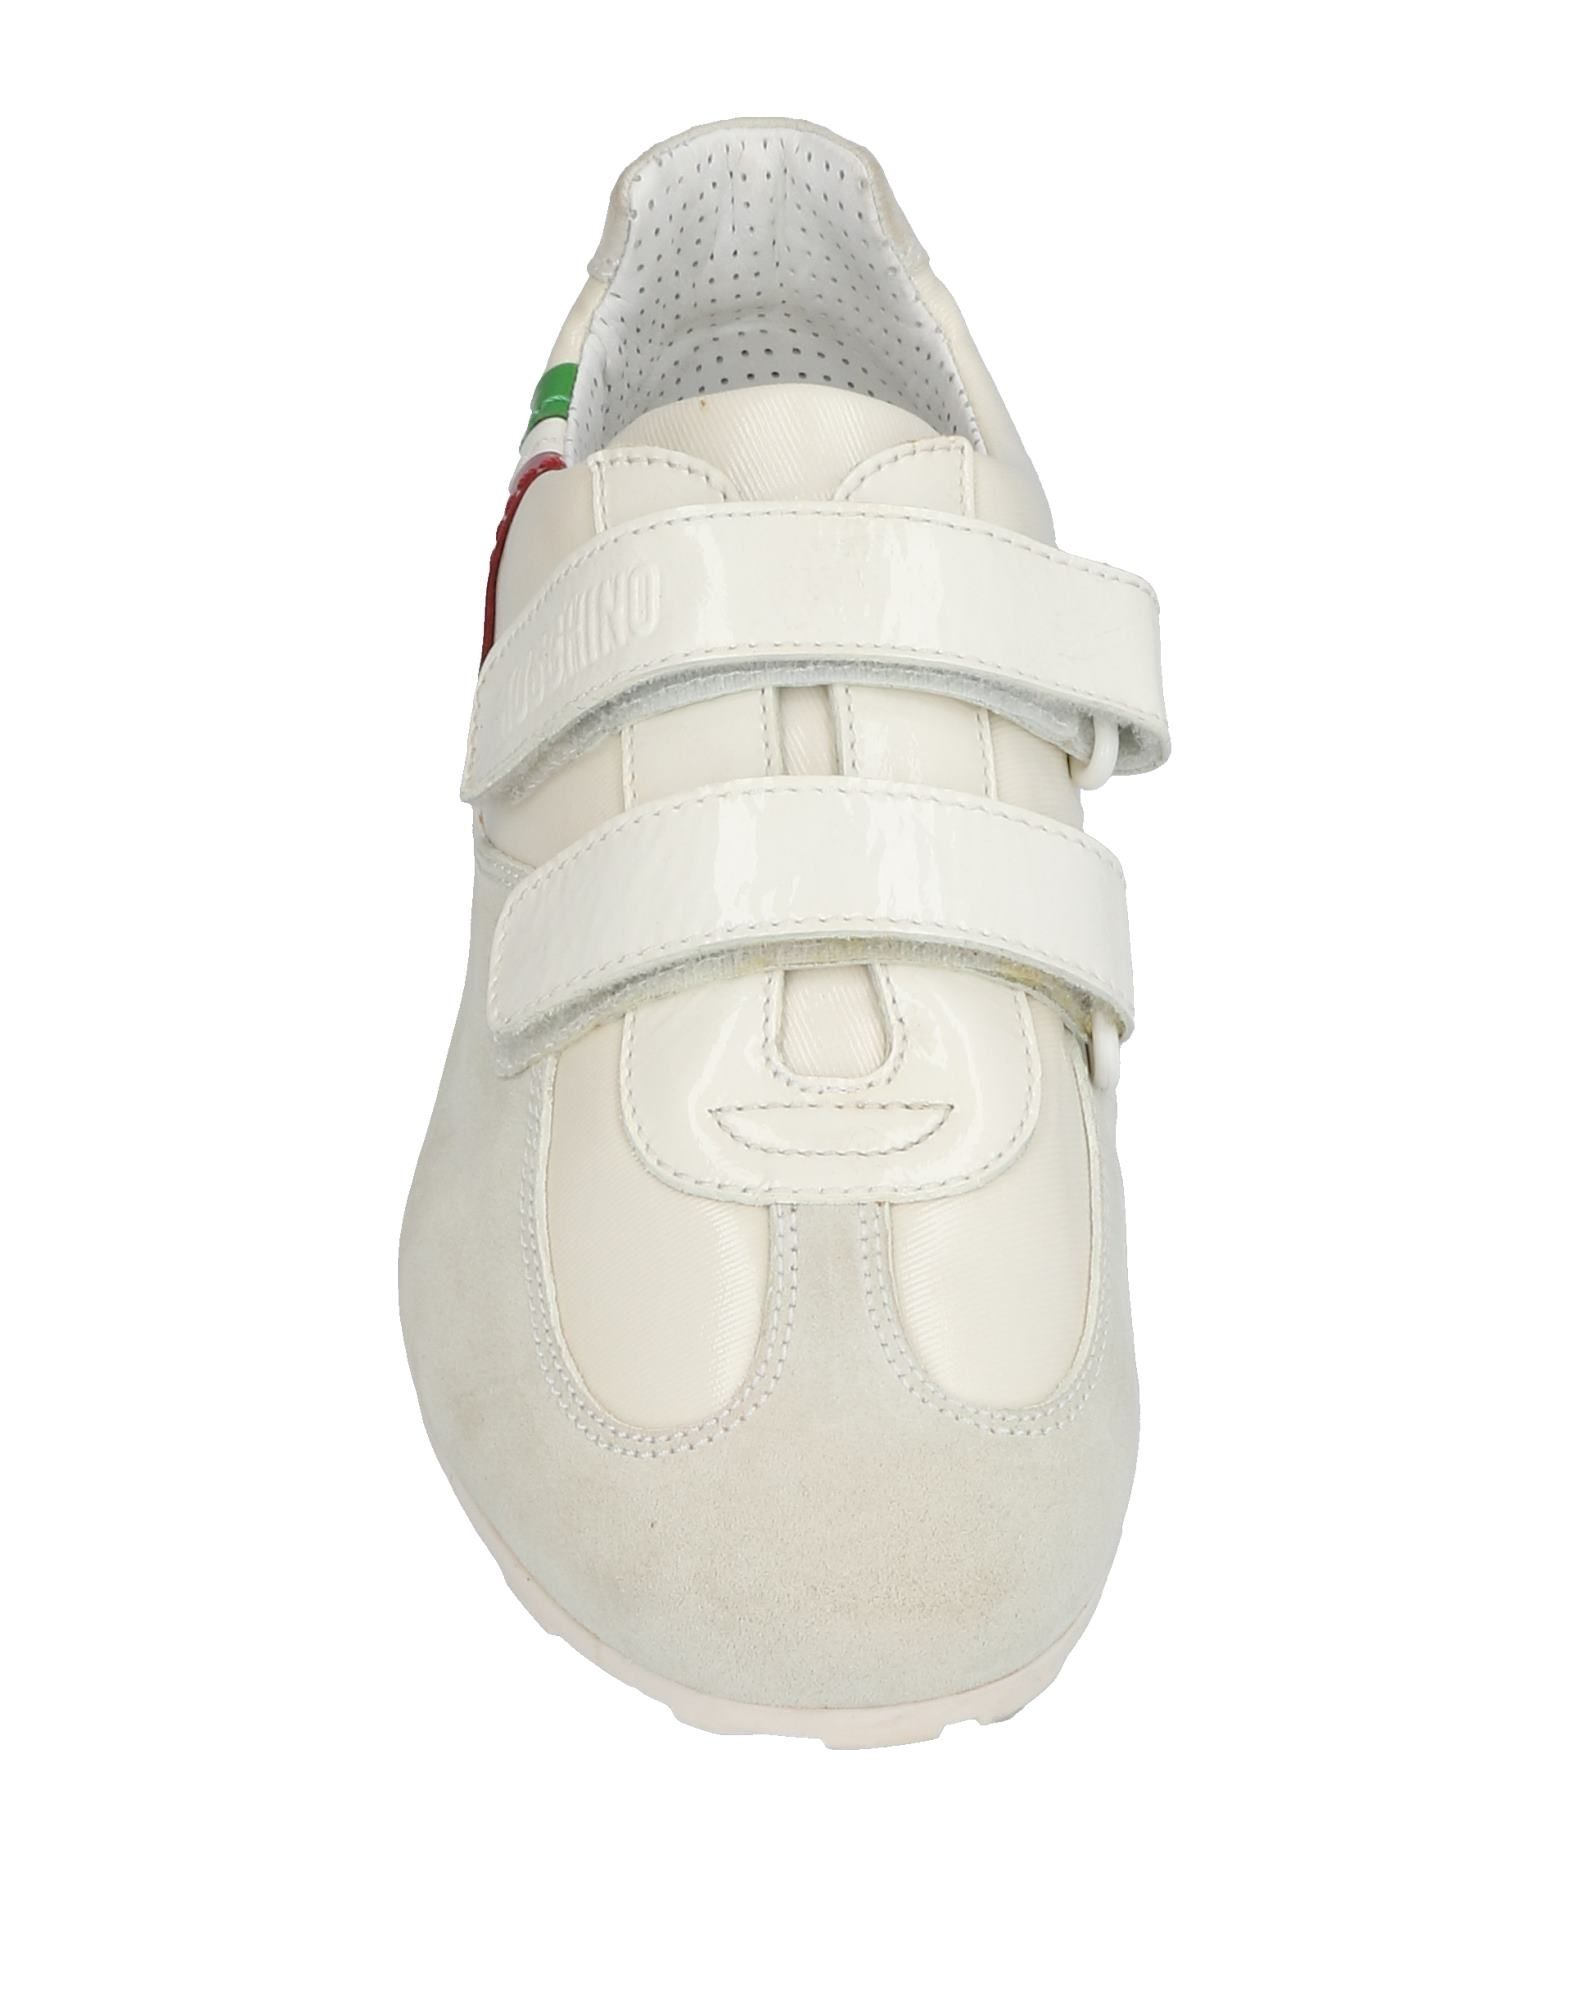 Sneakers Moschino Homme - Sneakers Moschino sur